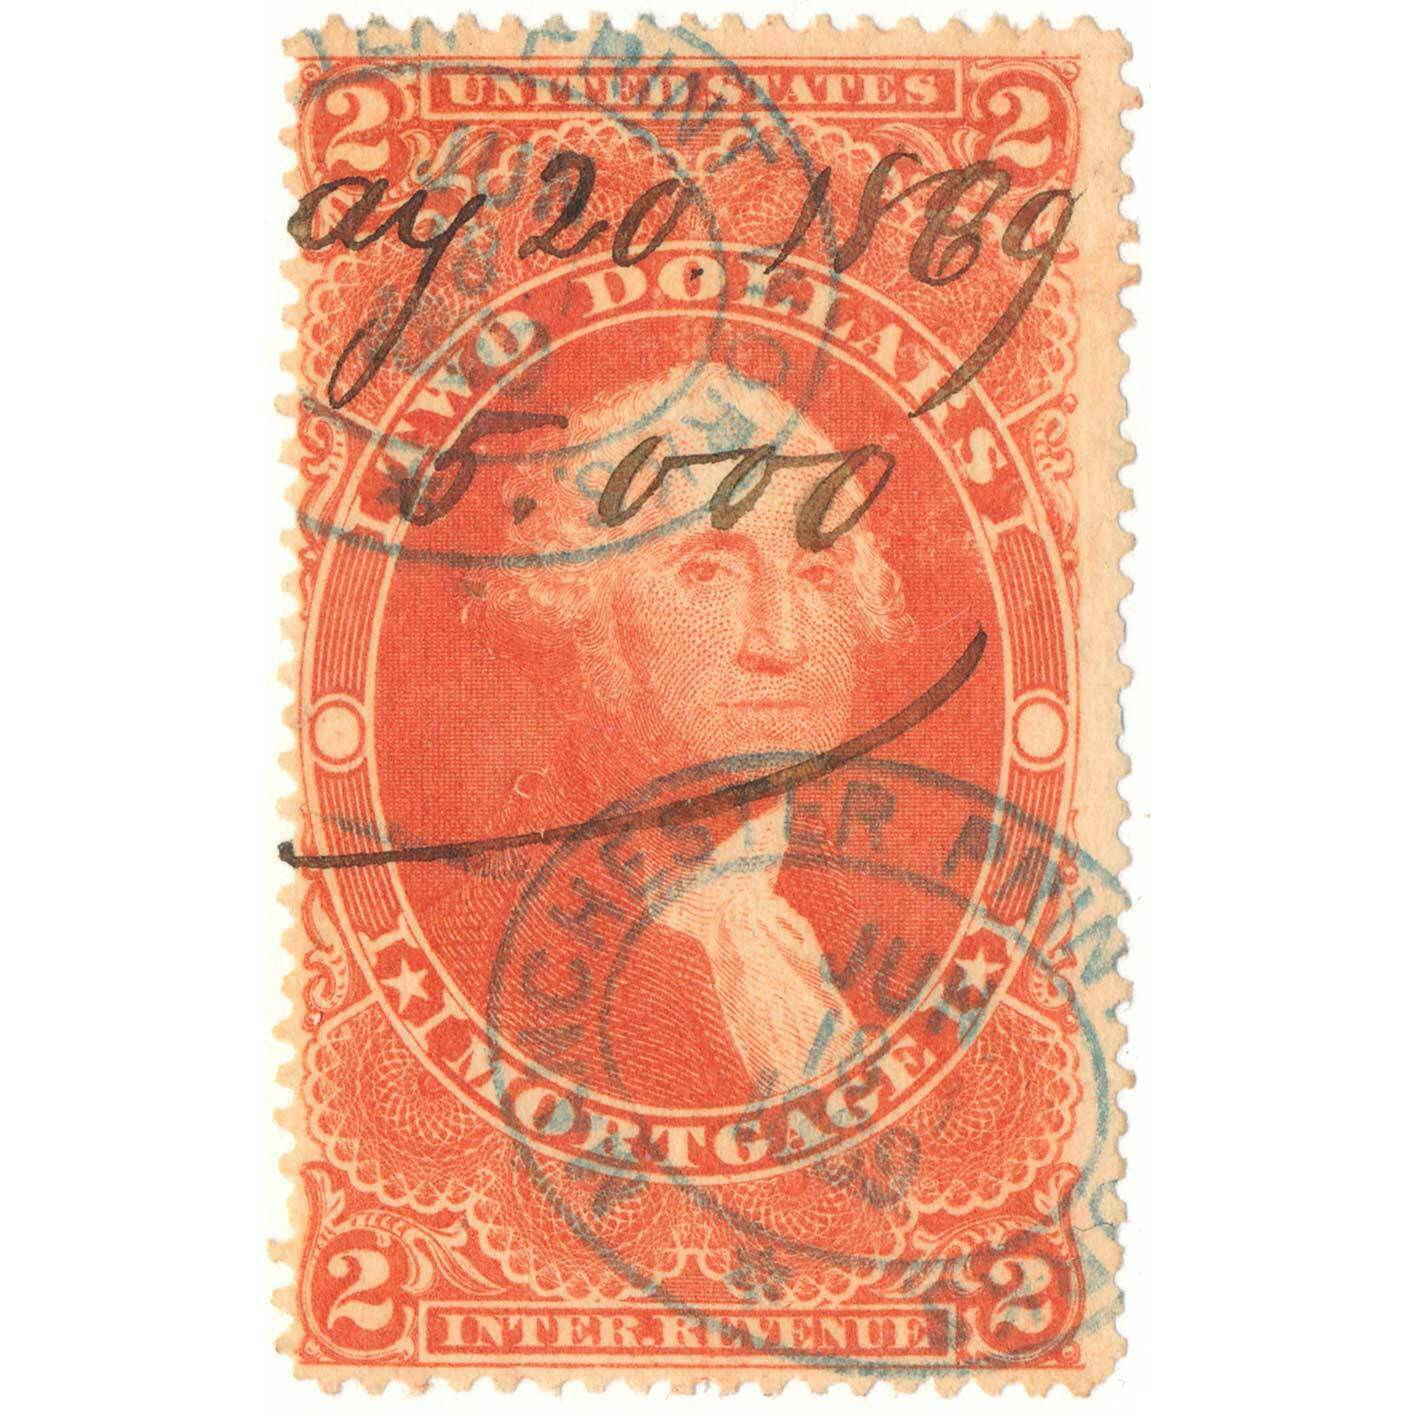 1862-71 R82C $2.00 Mortgage Revenue Stamp with Manchest